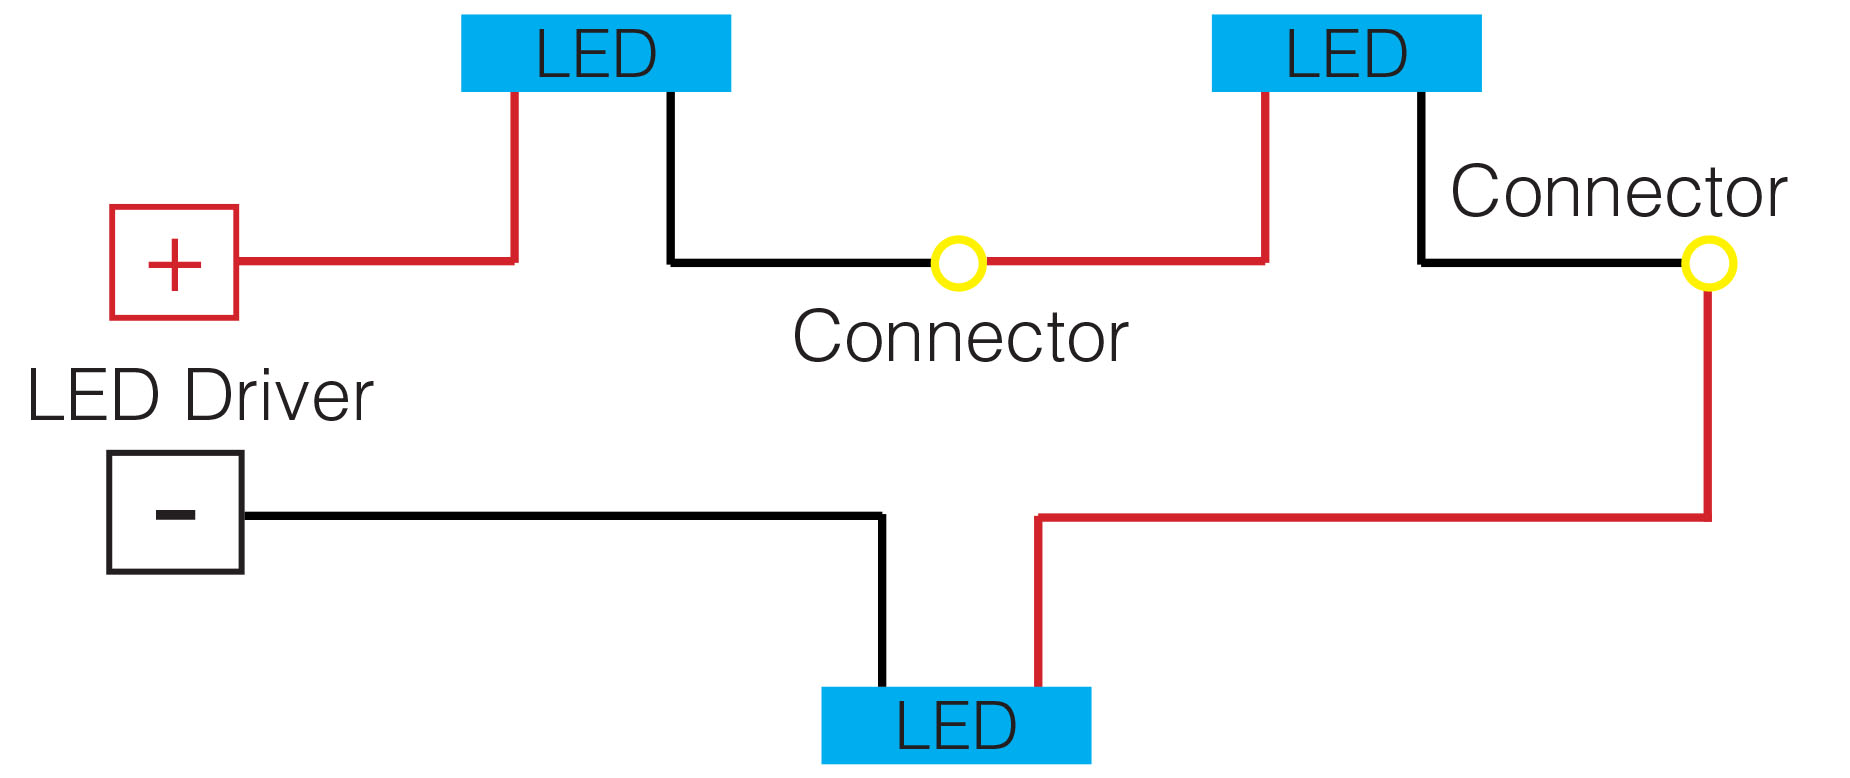 Diagram In Pictures Database Wiring Diagram For Led Downlights Just Download Or Read Led Downlights Bone Diagram Onyxum Com